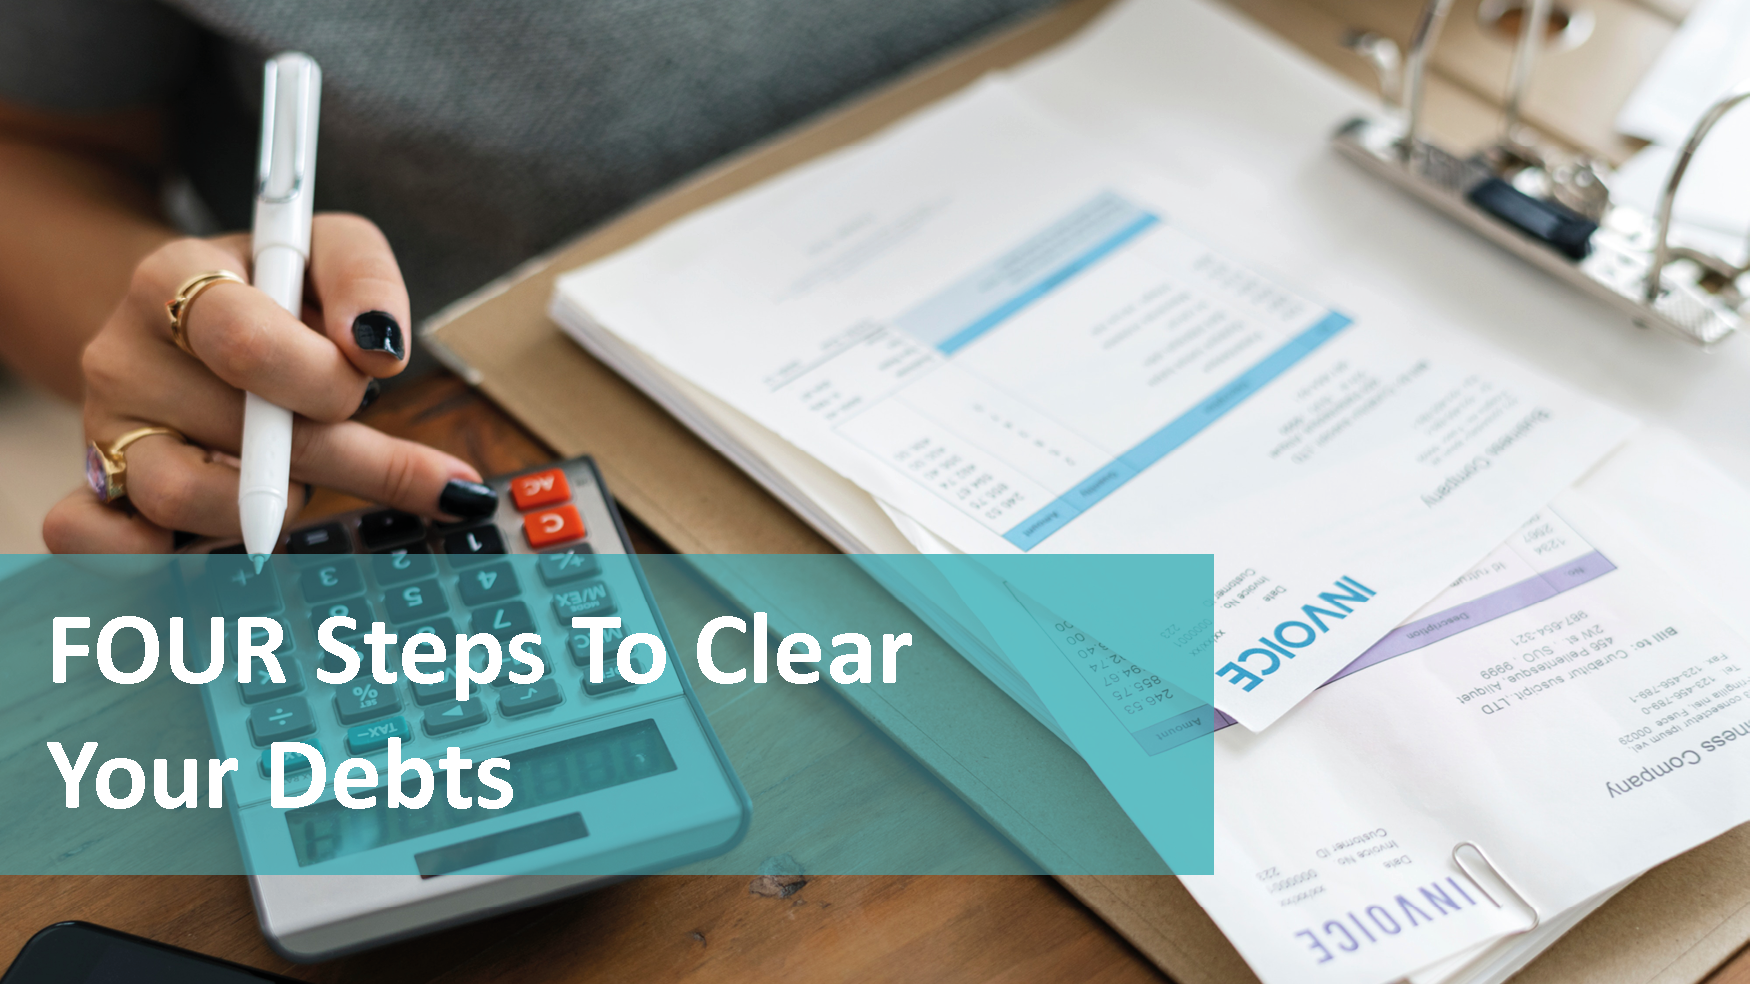 Four steps to clear your debt